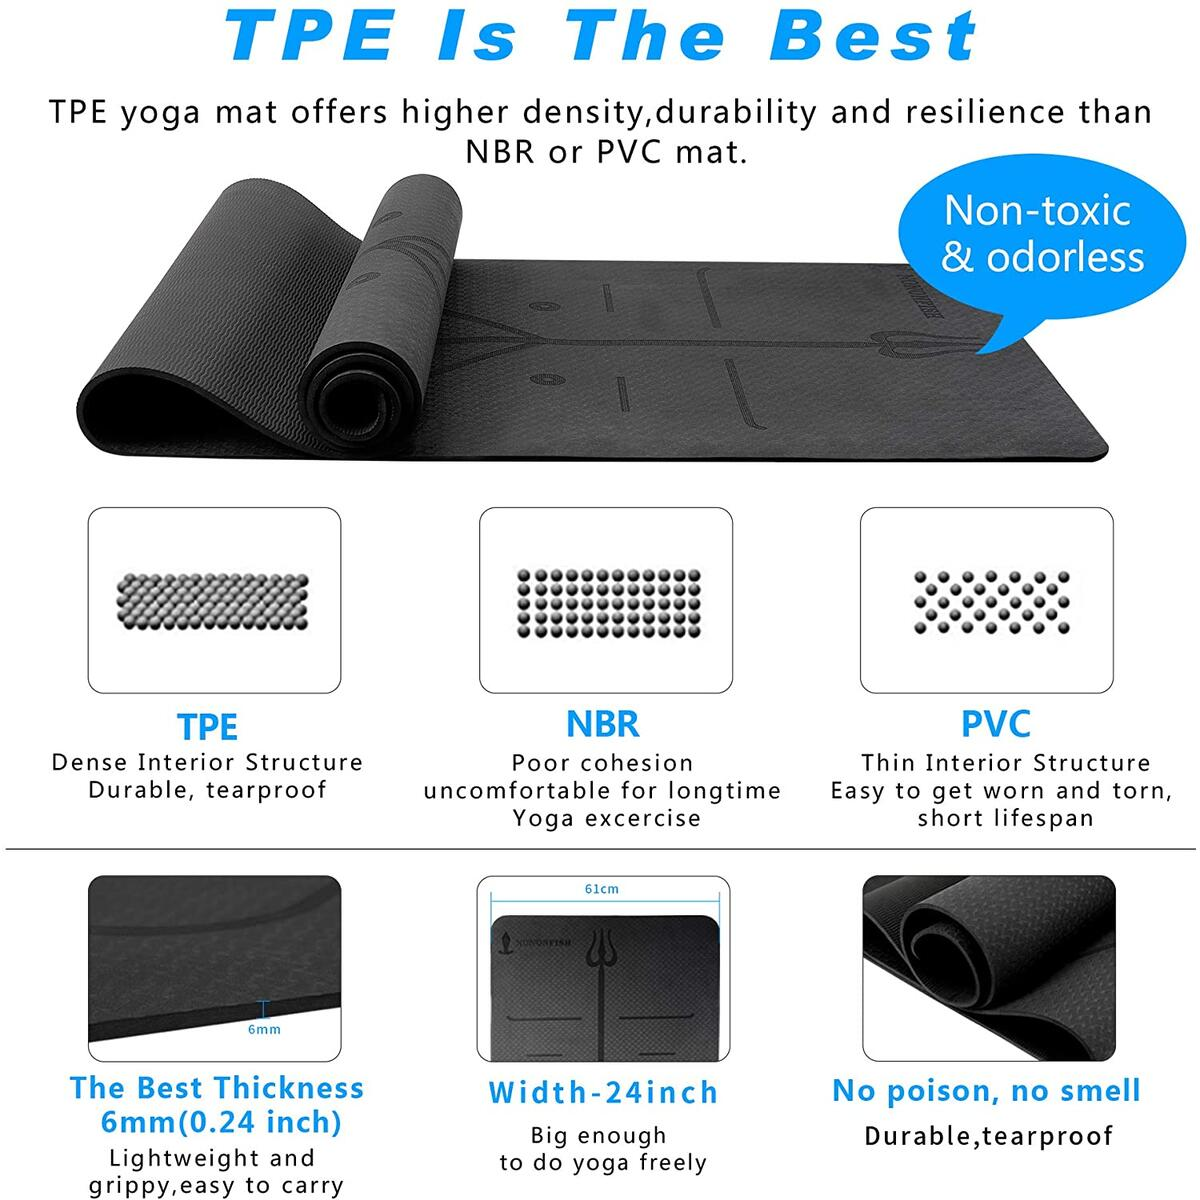 Eco Friendly TPE Yoga Mat with Alignment System, Carrying Strap, Extra Thick 1/4